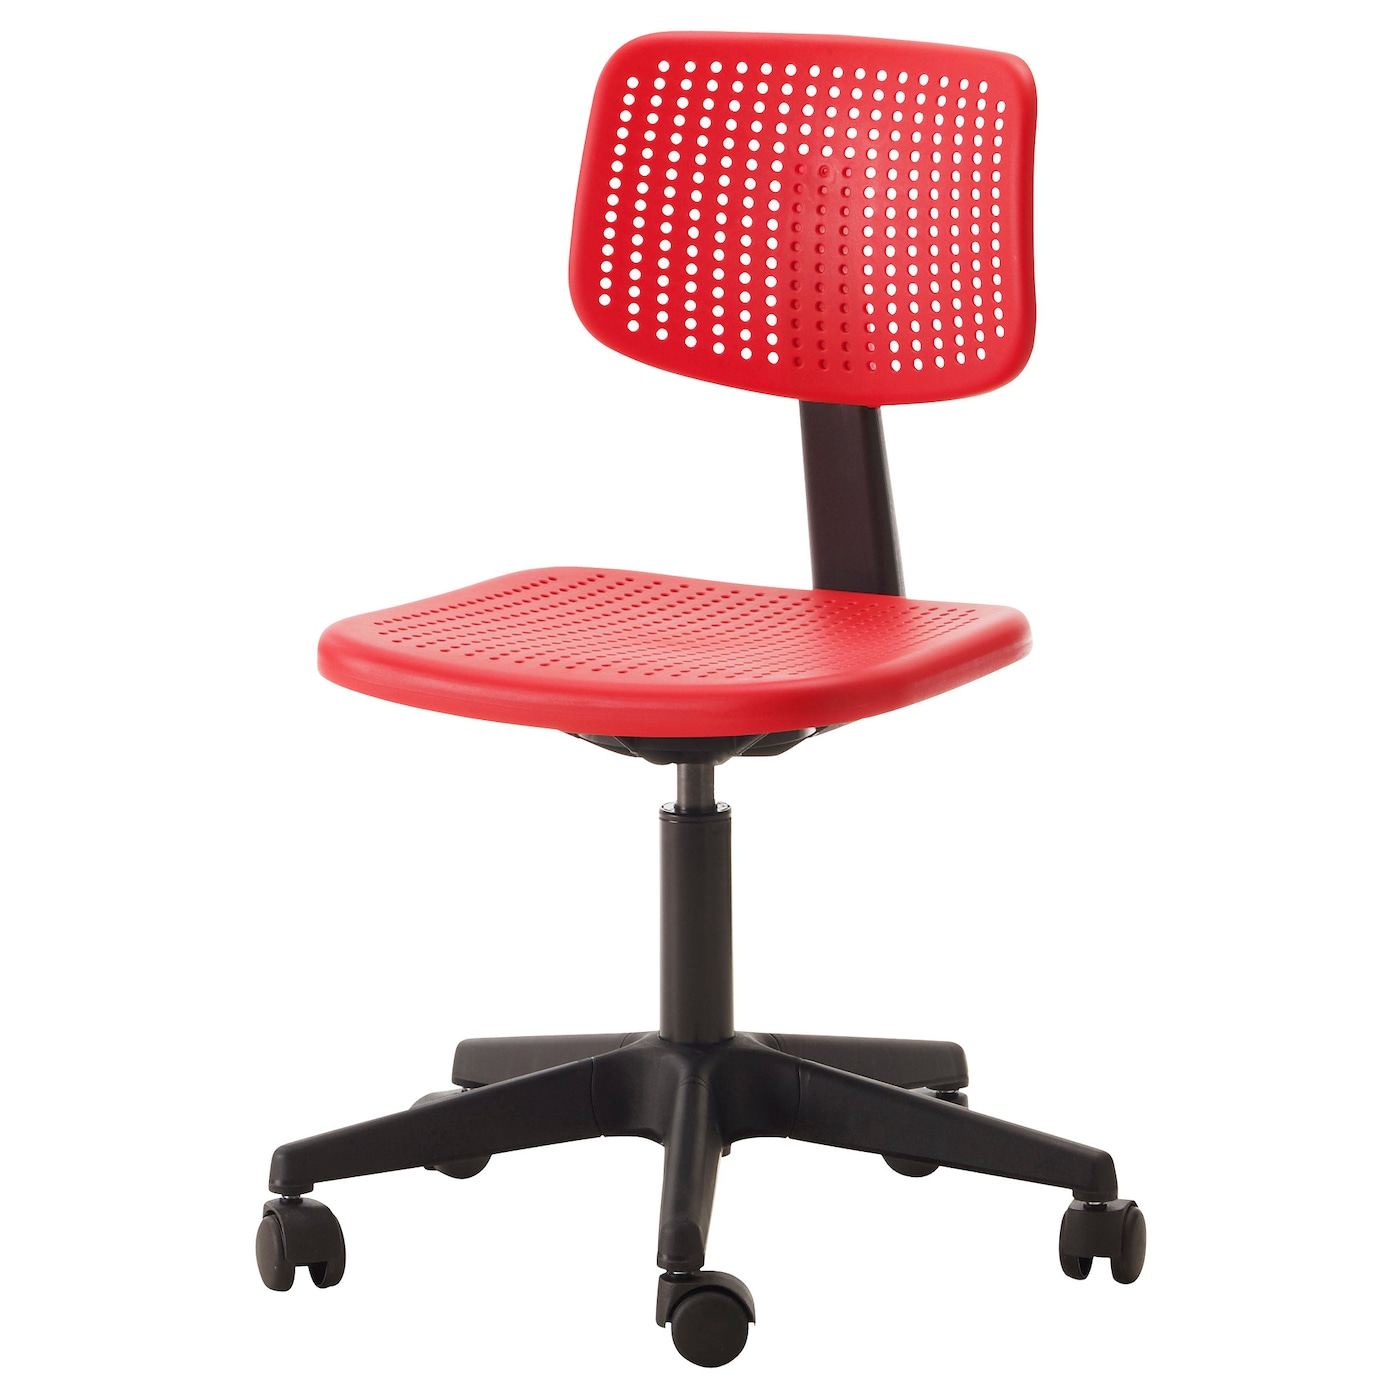 IKEA ALRIK swivel chair You sit comfortably since the chair is adjustable in height.